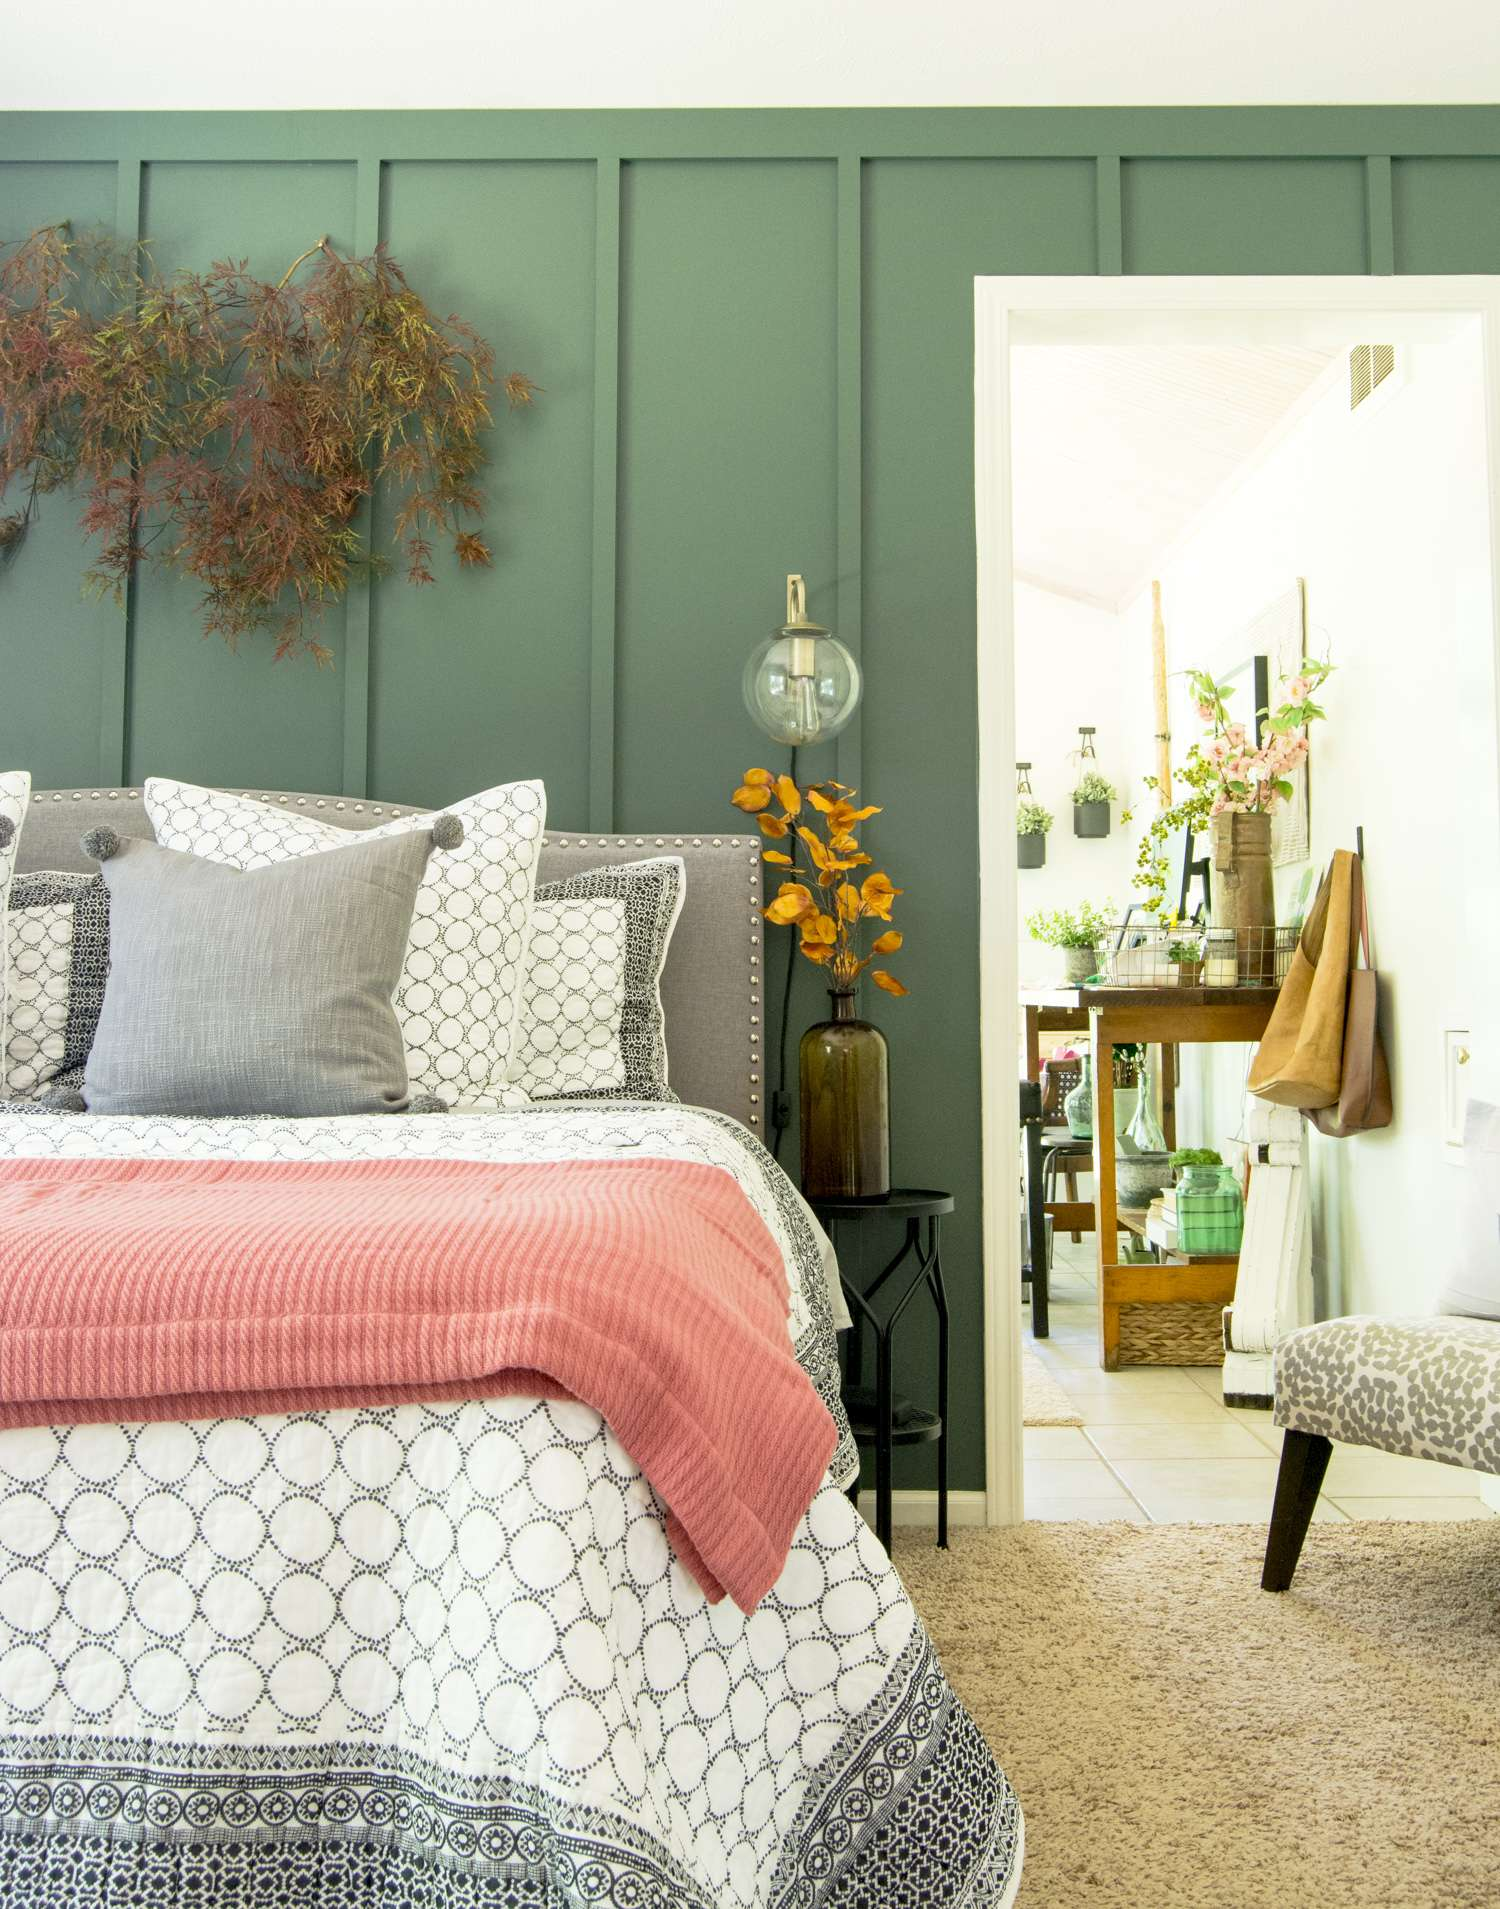 Cozy fall bedding sets